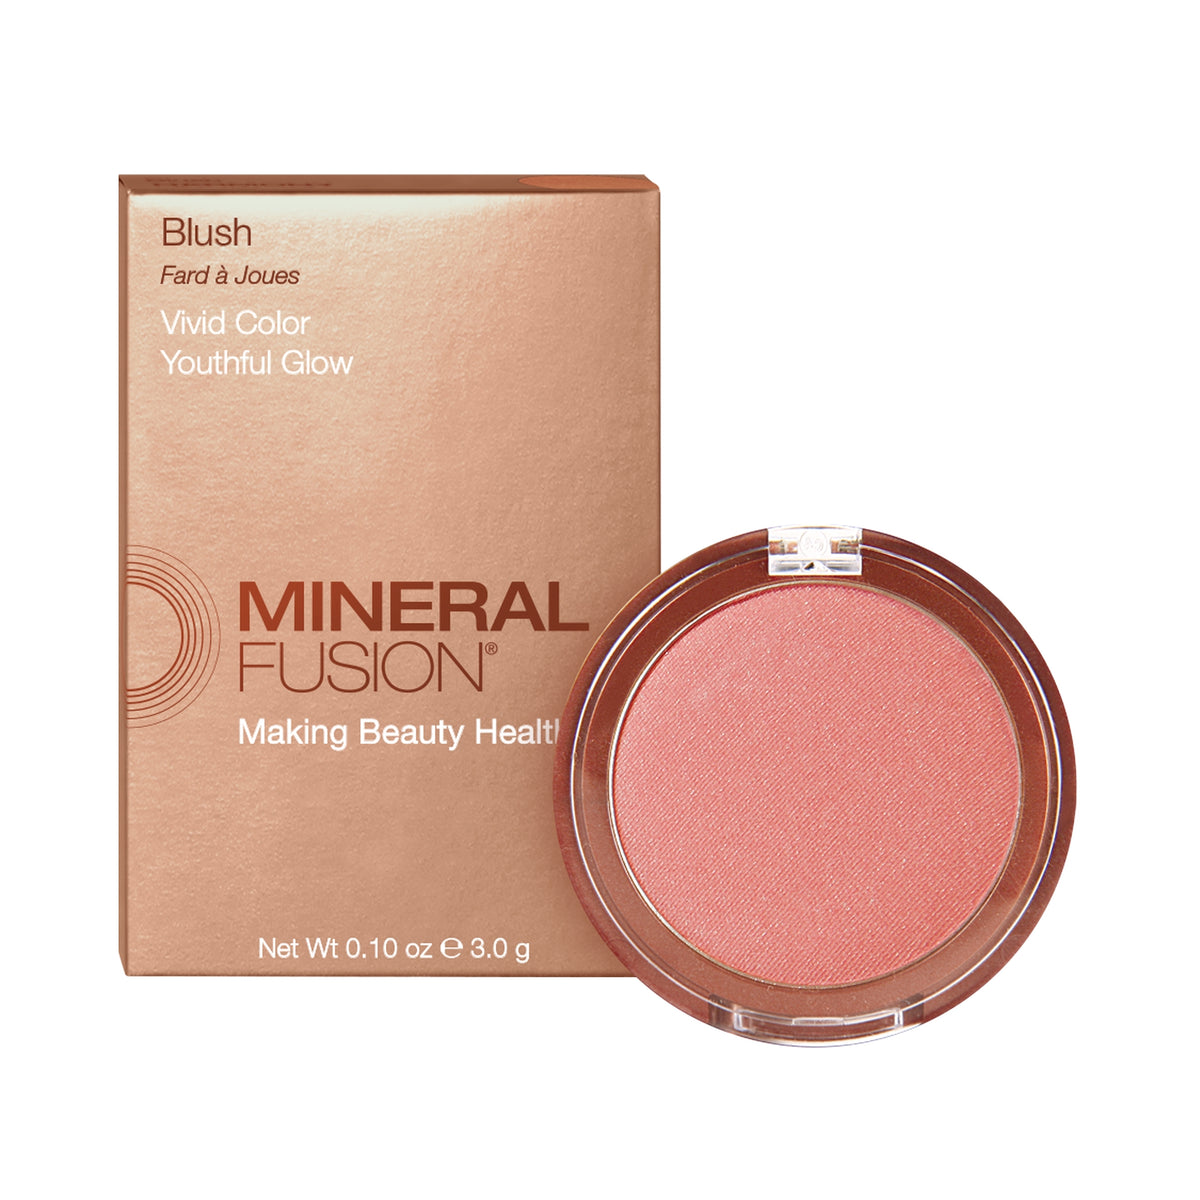 Mineral Fusion Blush in Flashy